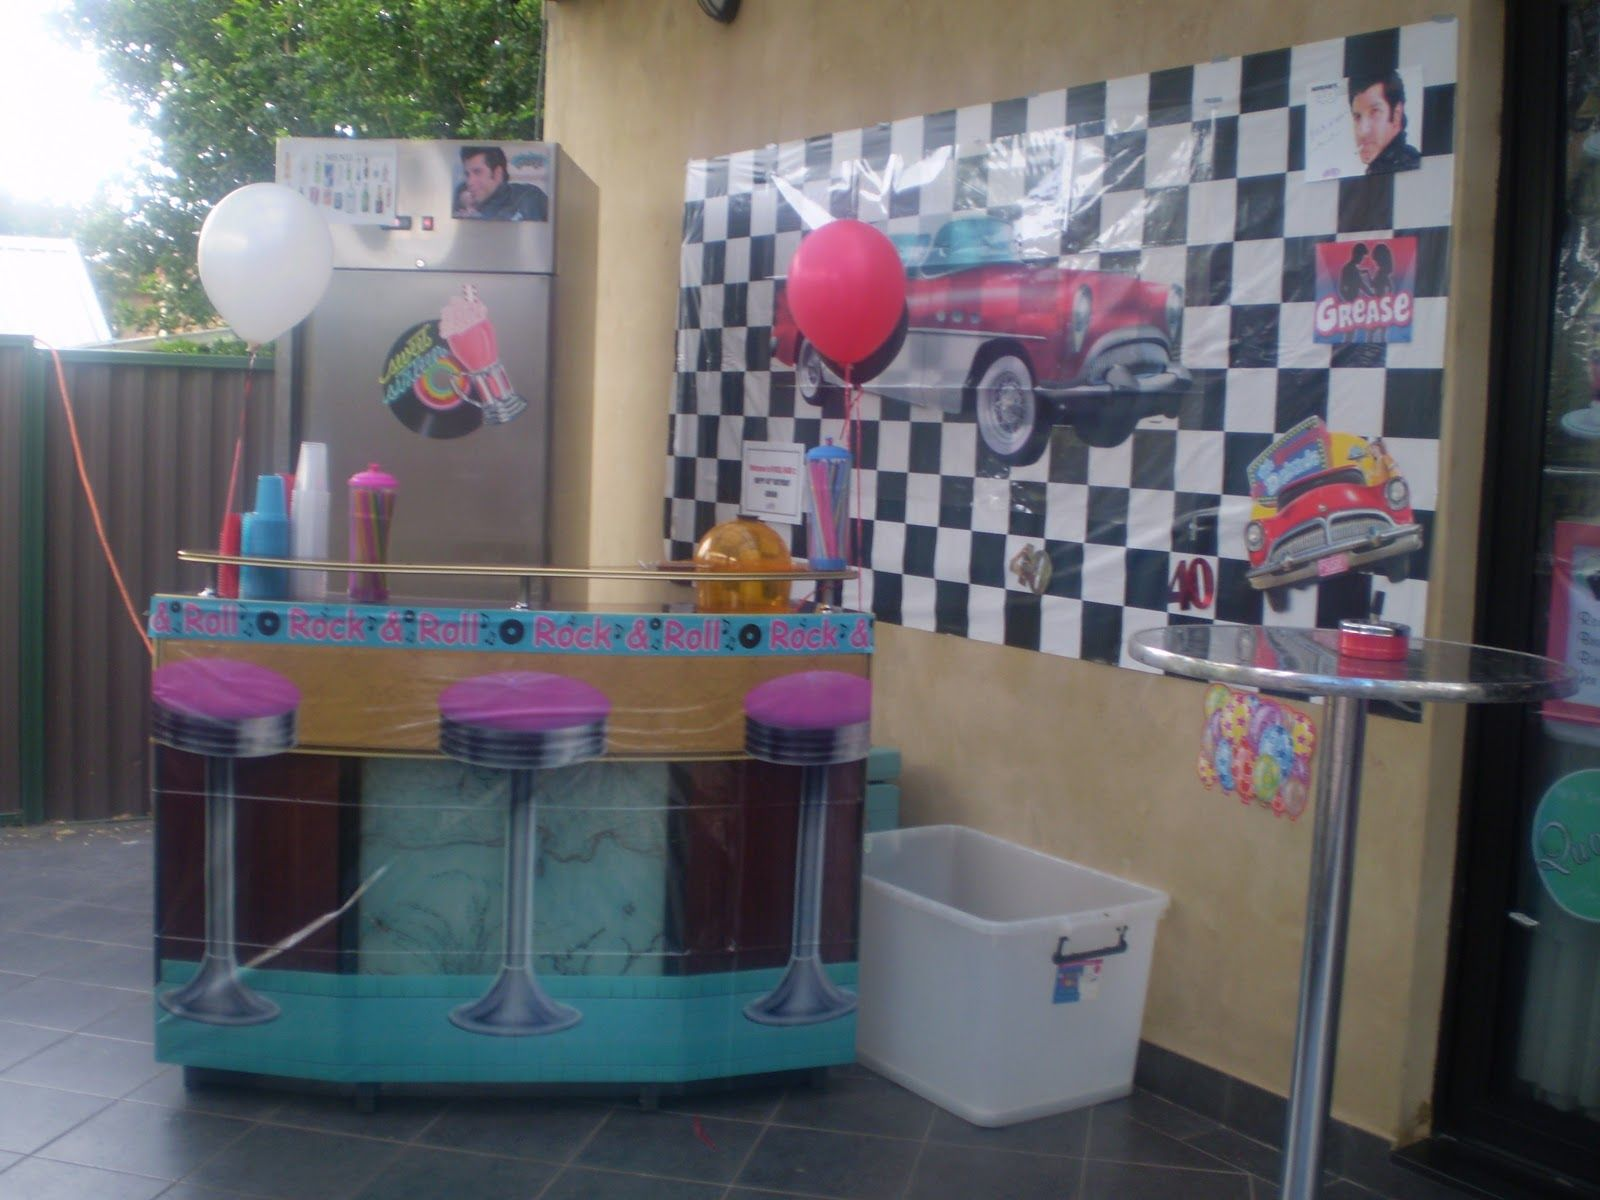 Beautiful Decoration Ideas Grease Themed Party Part - 2: Inspiring Grease Party Decorations #1 50s Rock And Roll Party .